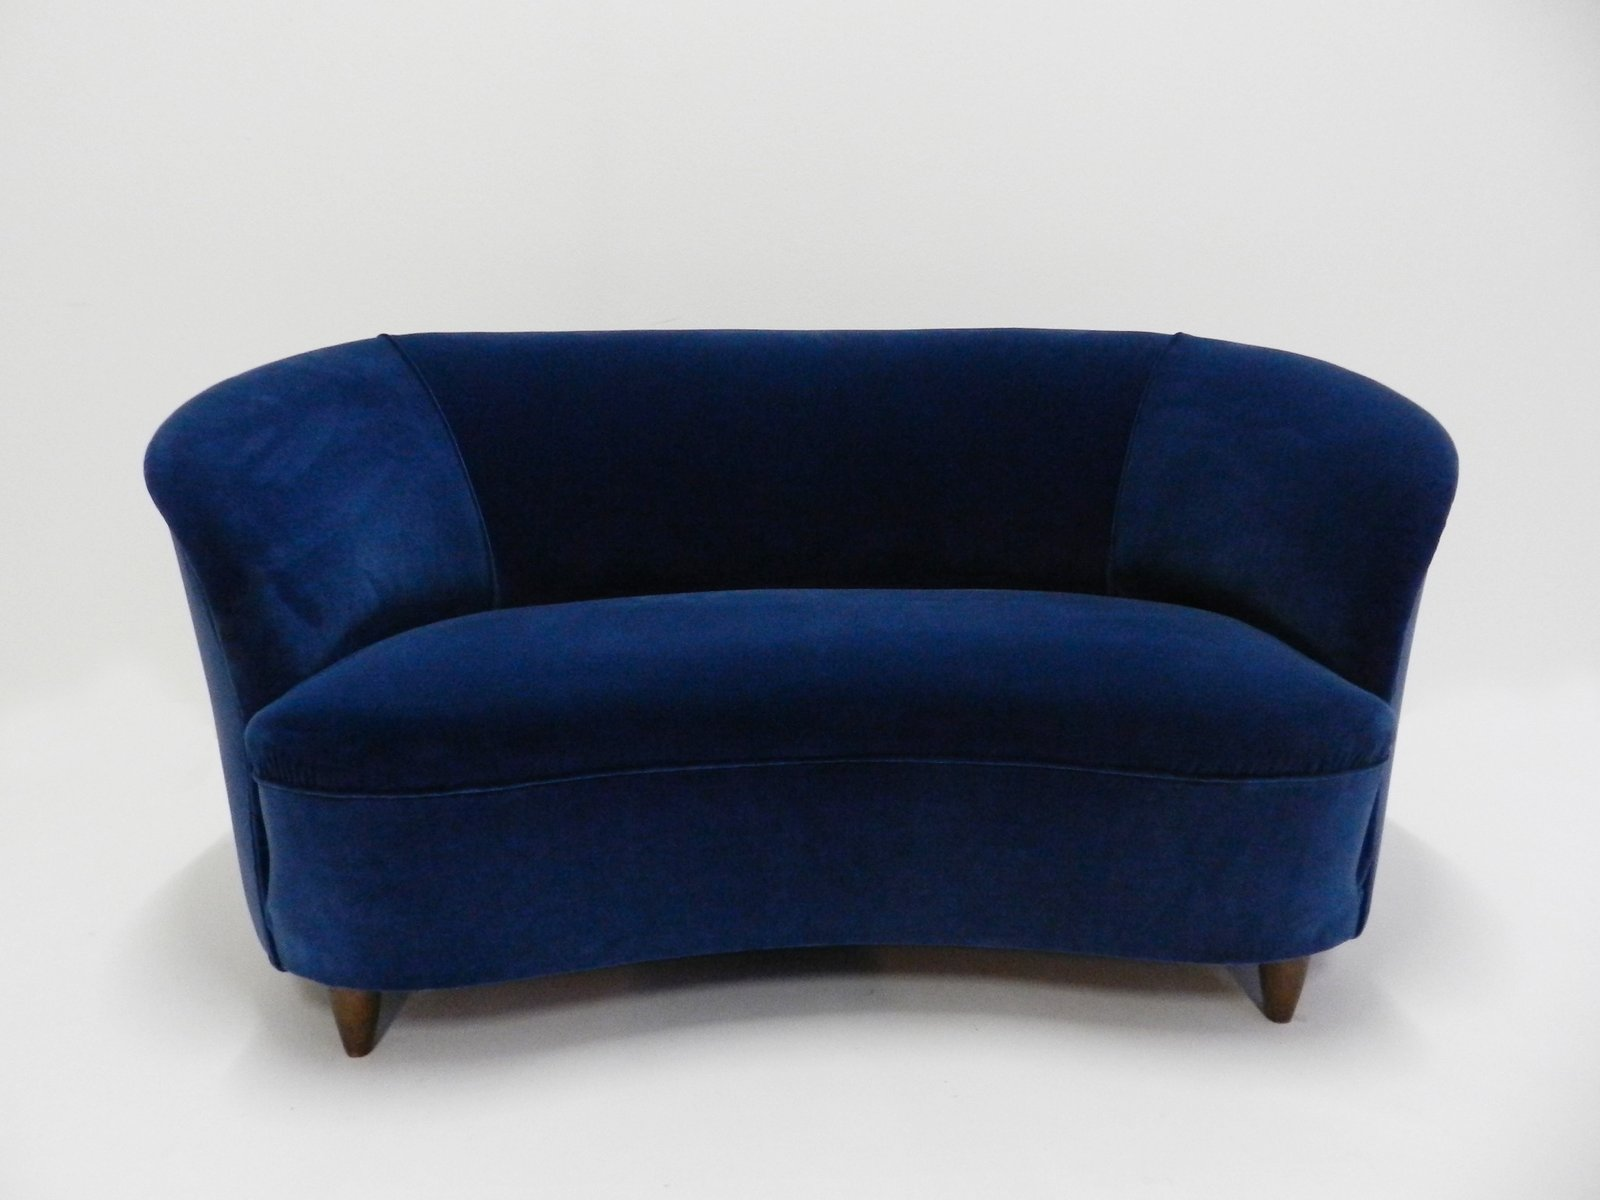 italian midcentury blue velvet curved loveseat for sale at pamono - italian midcentury blue velvet curved loveseat